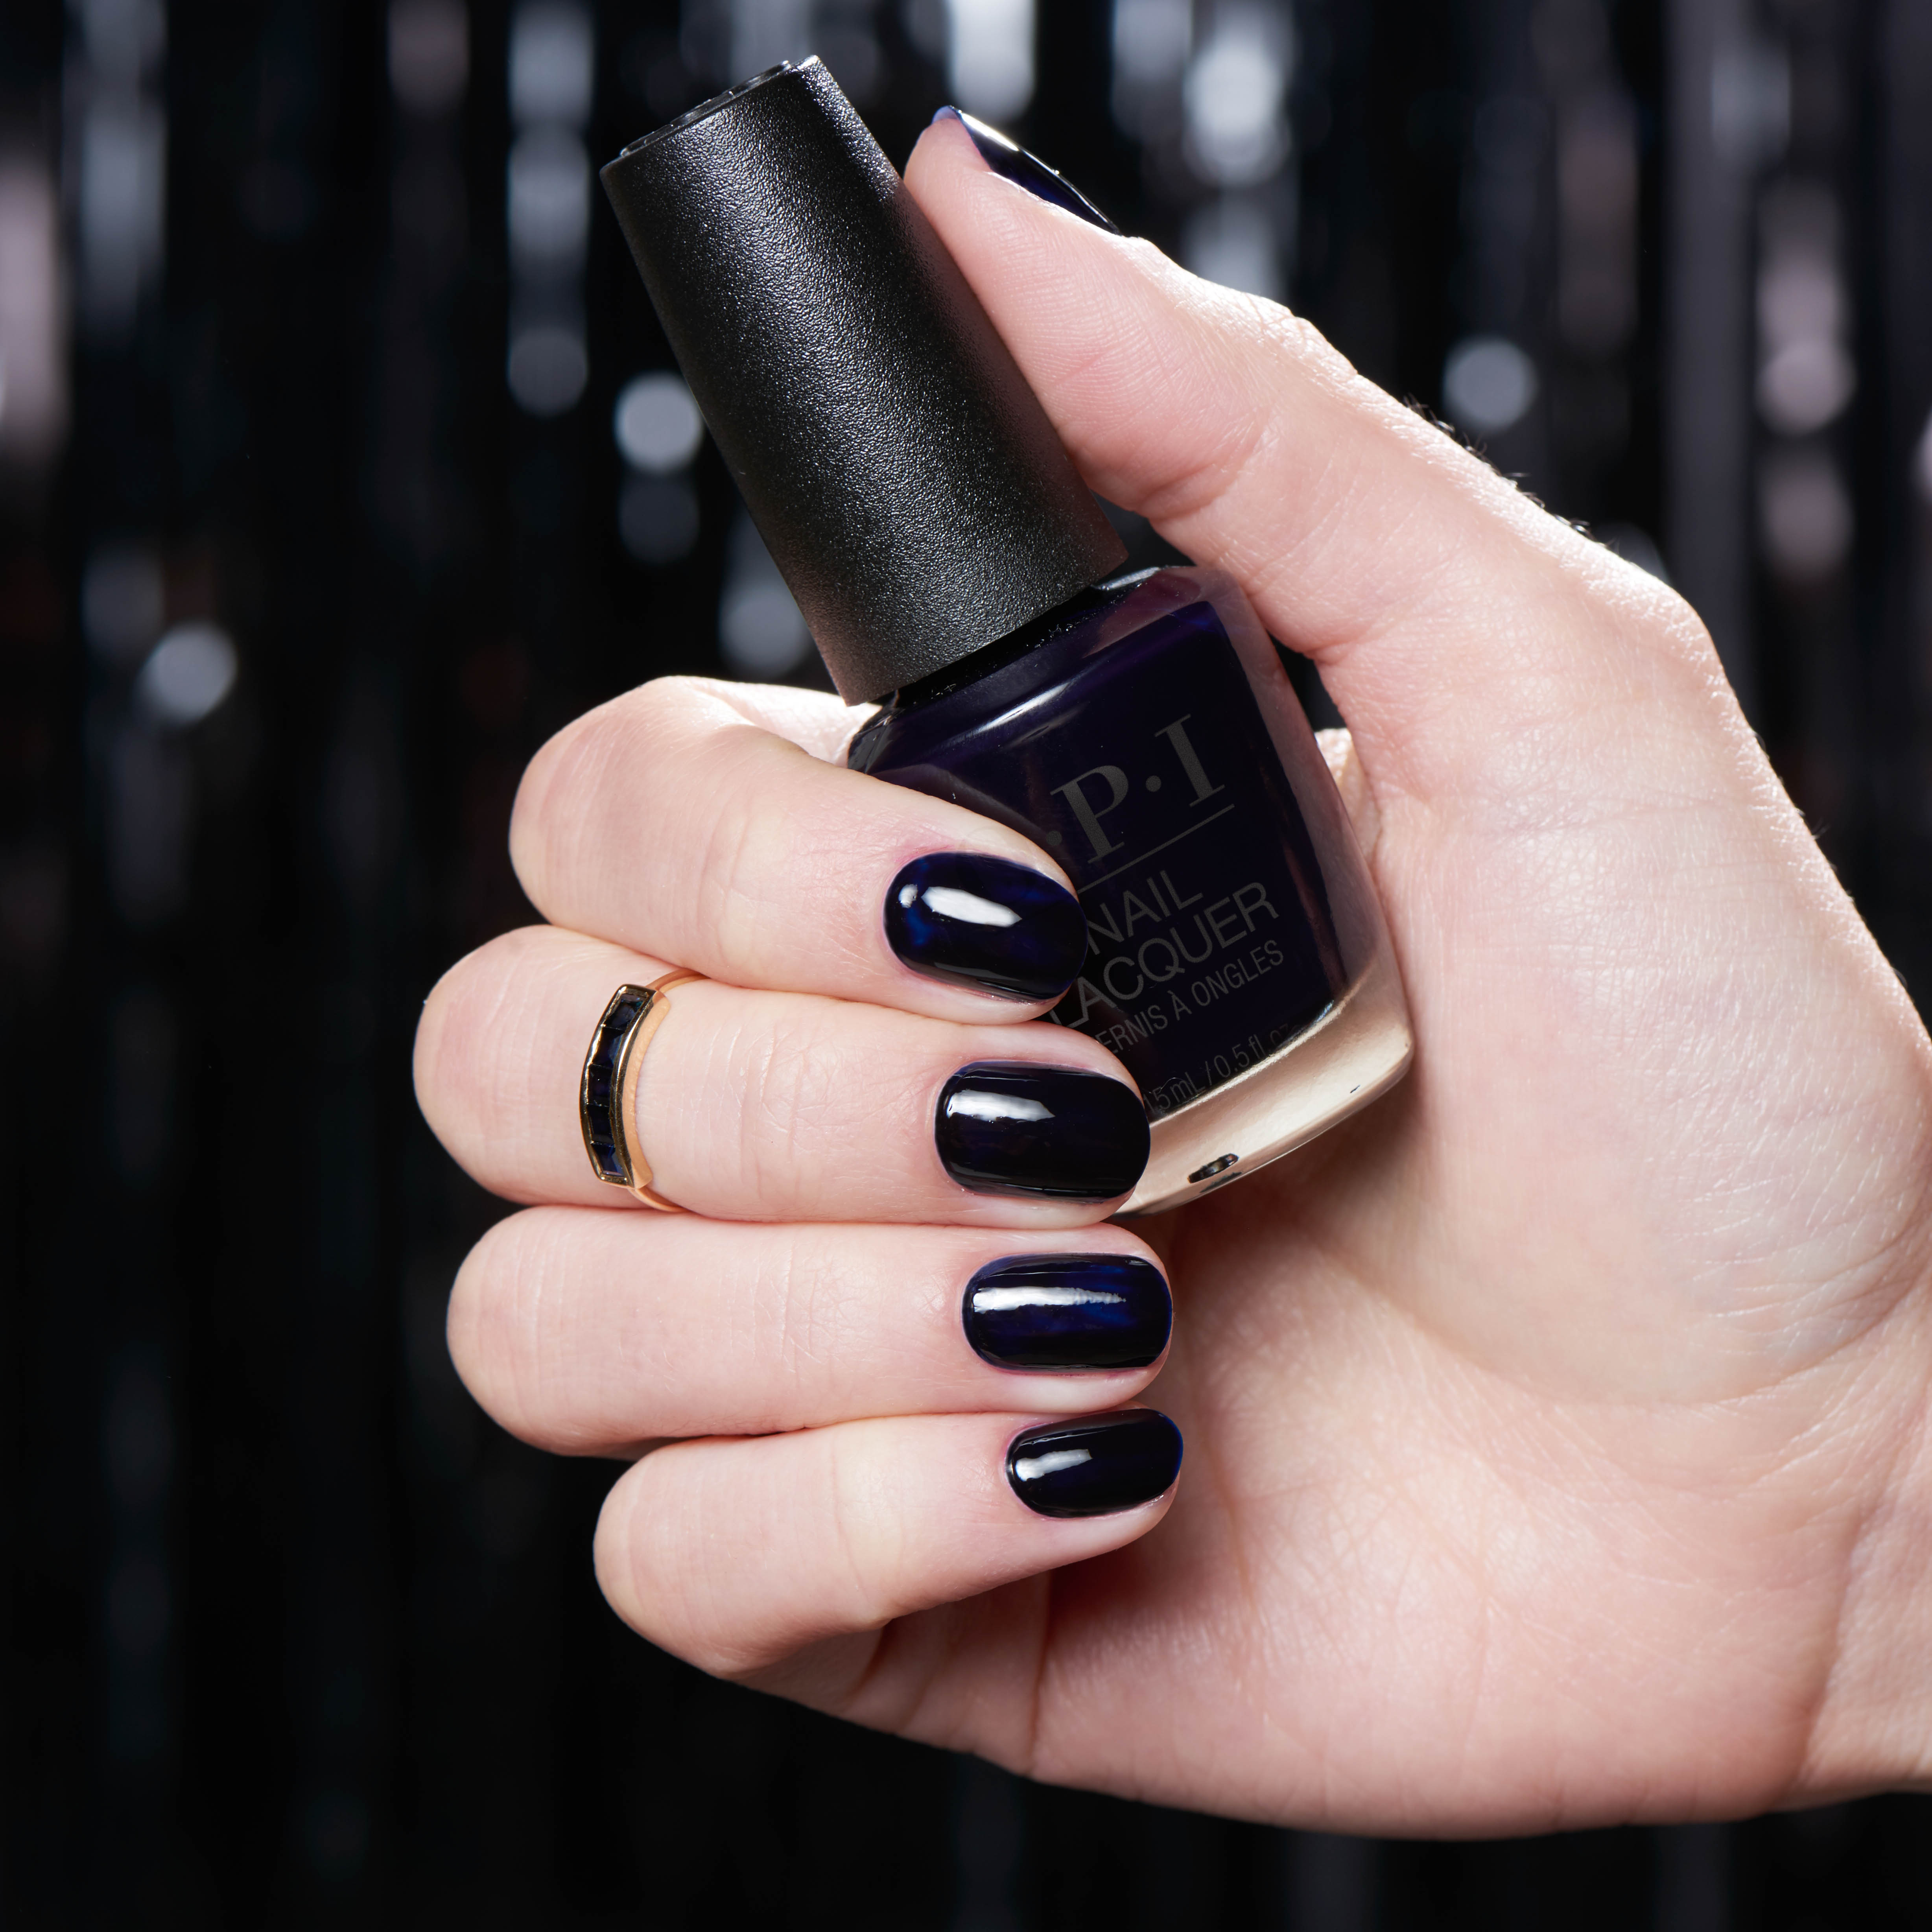 Holidazed Over You - Nail Lacquer | OPI